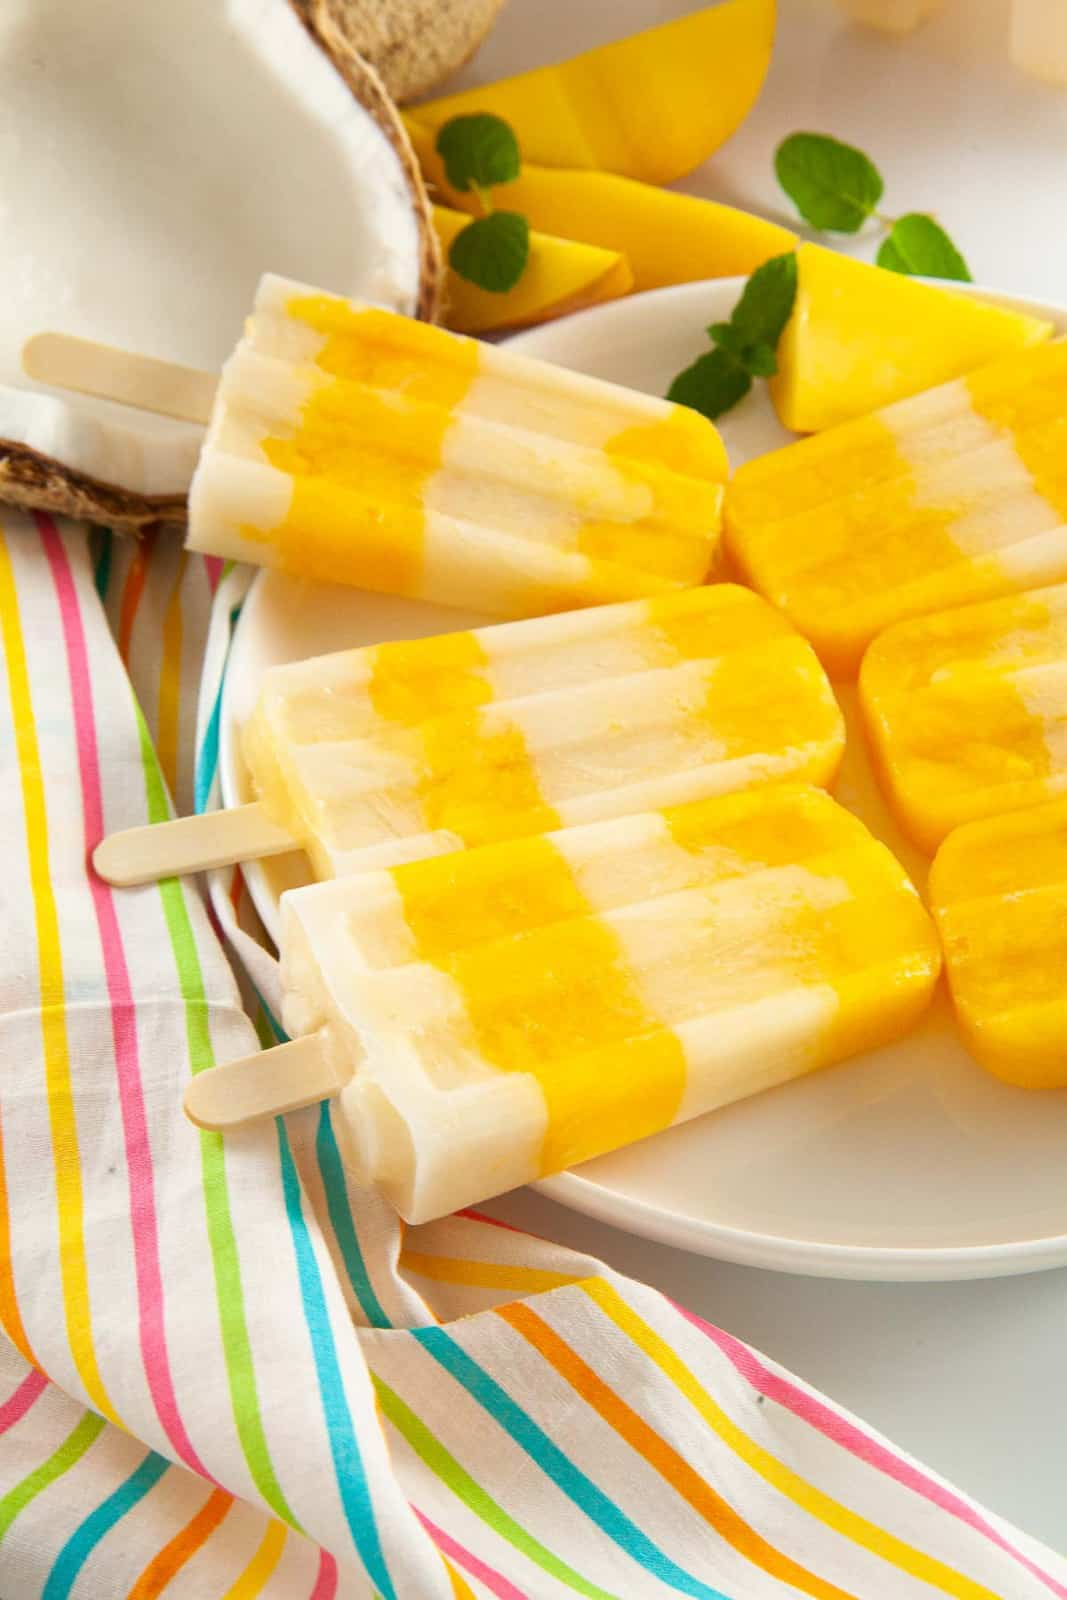 Layered mango popsicles with coconut milk on a plate.